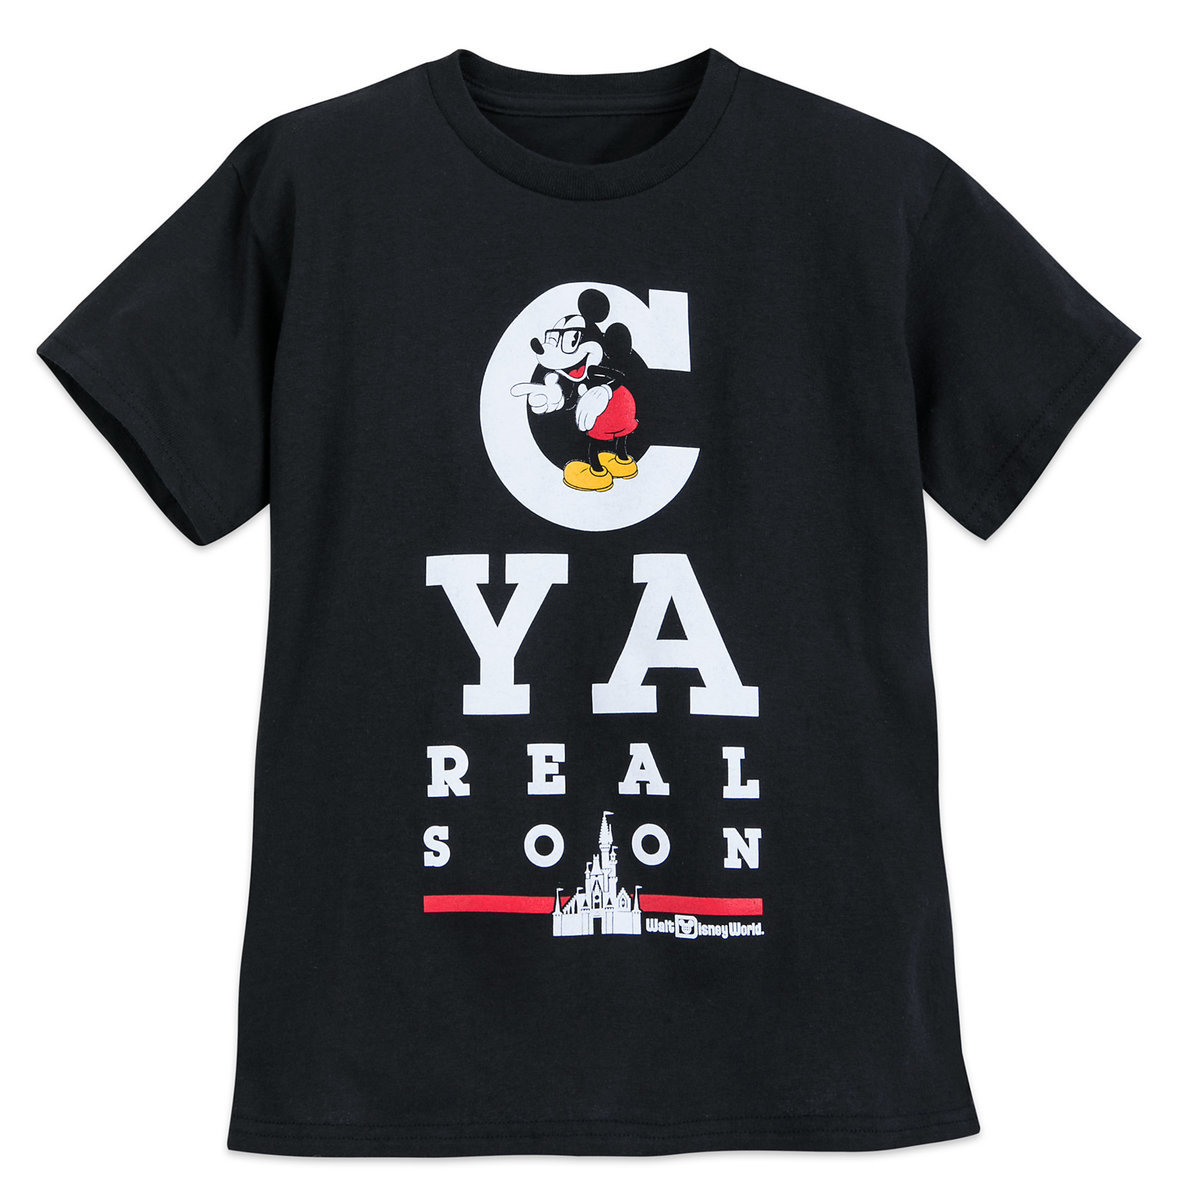 Mickey mouse eye chart t shirt for kids walt disney world shopdisney mickey mouse eye chart t shirt for kids walt disney world nvjuhfo Images